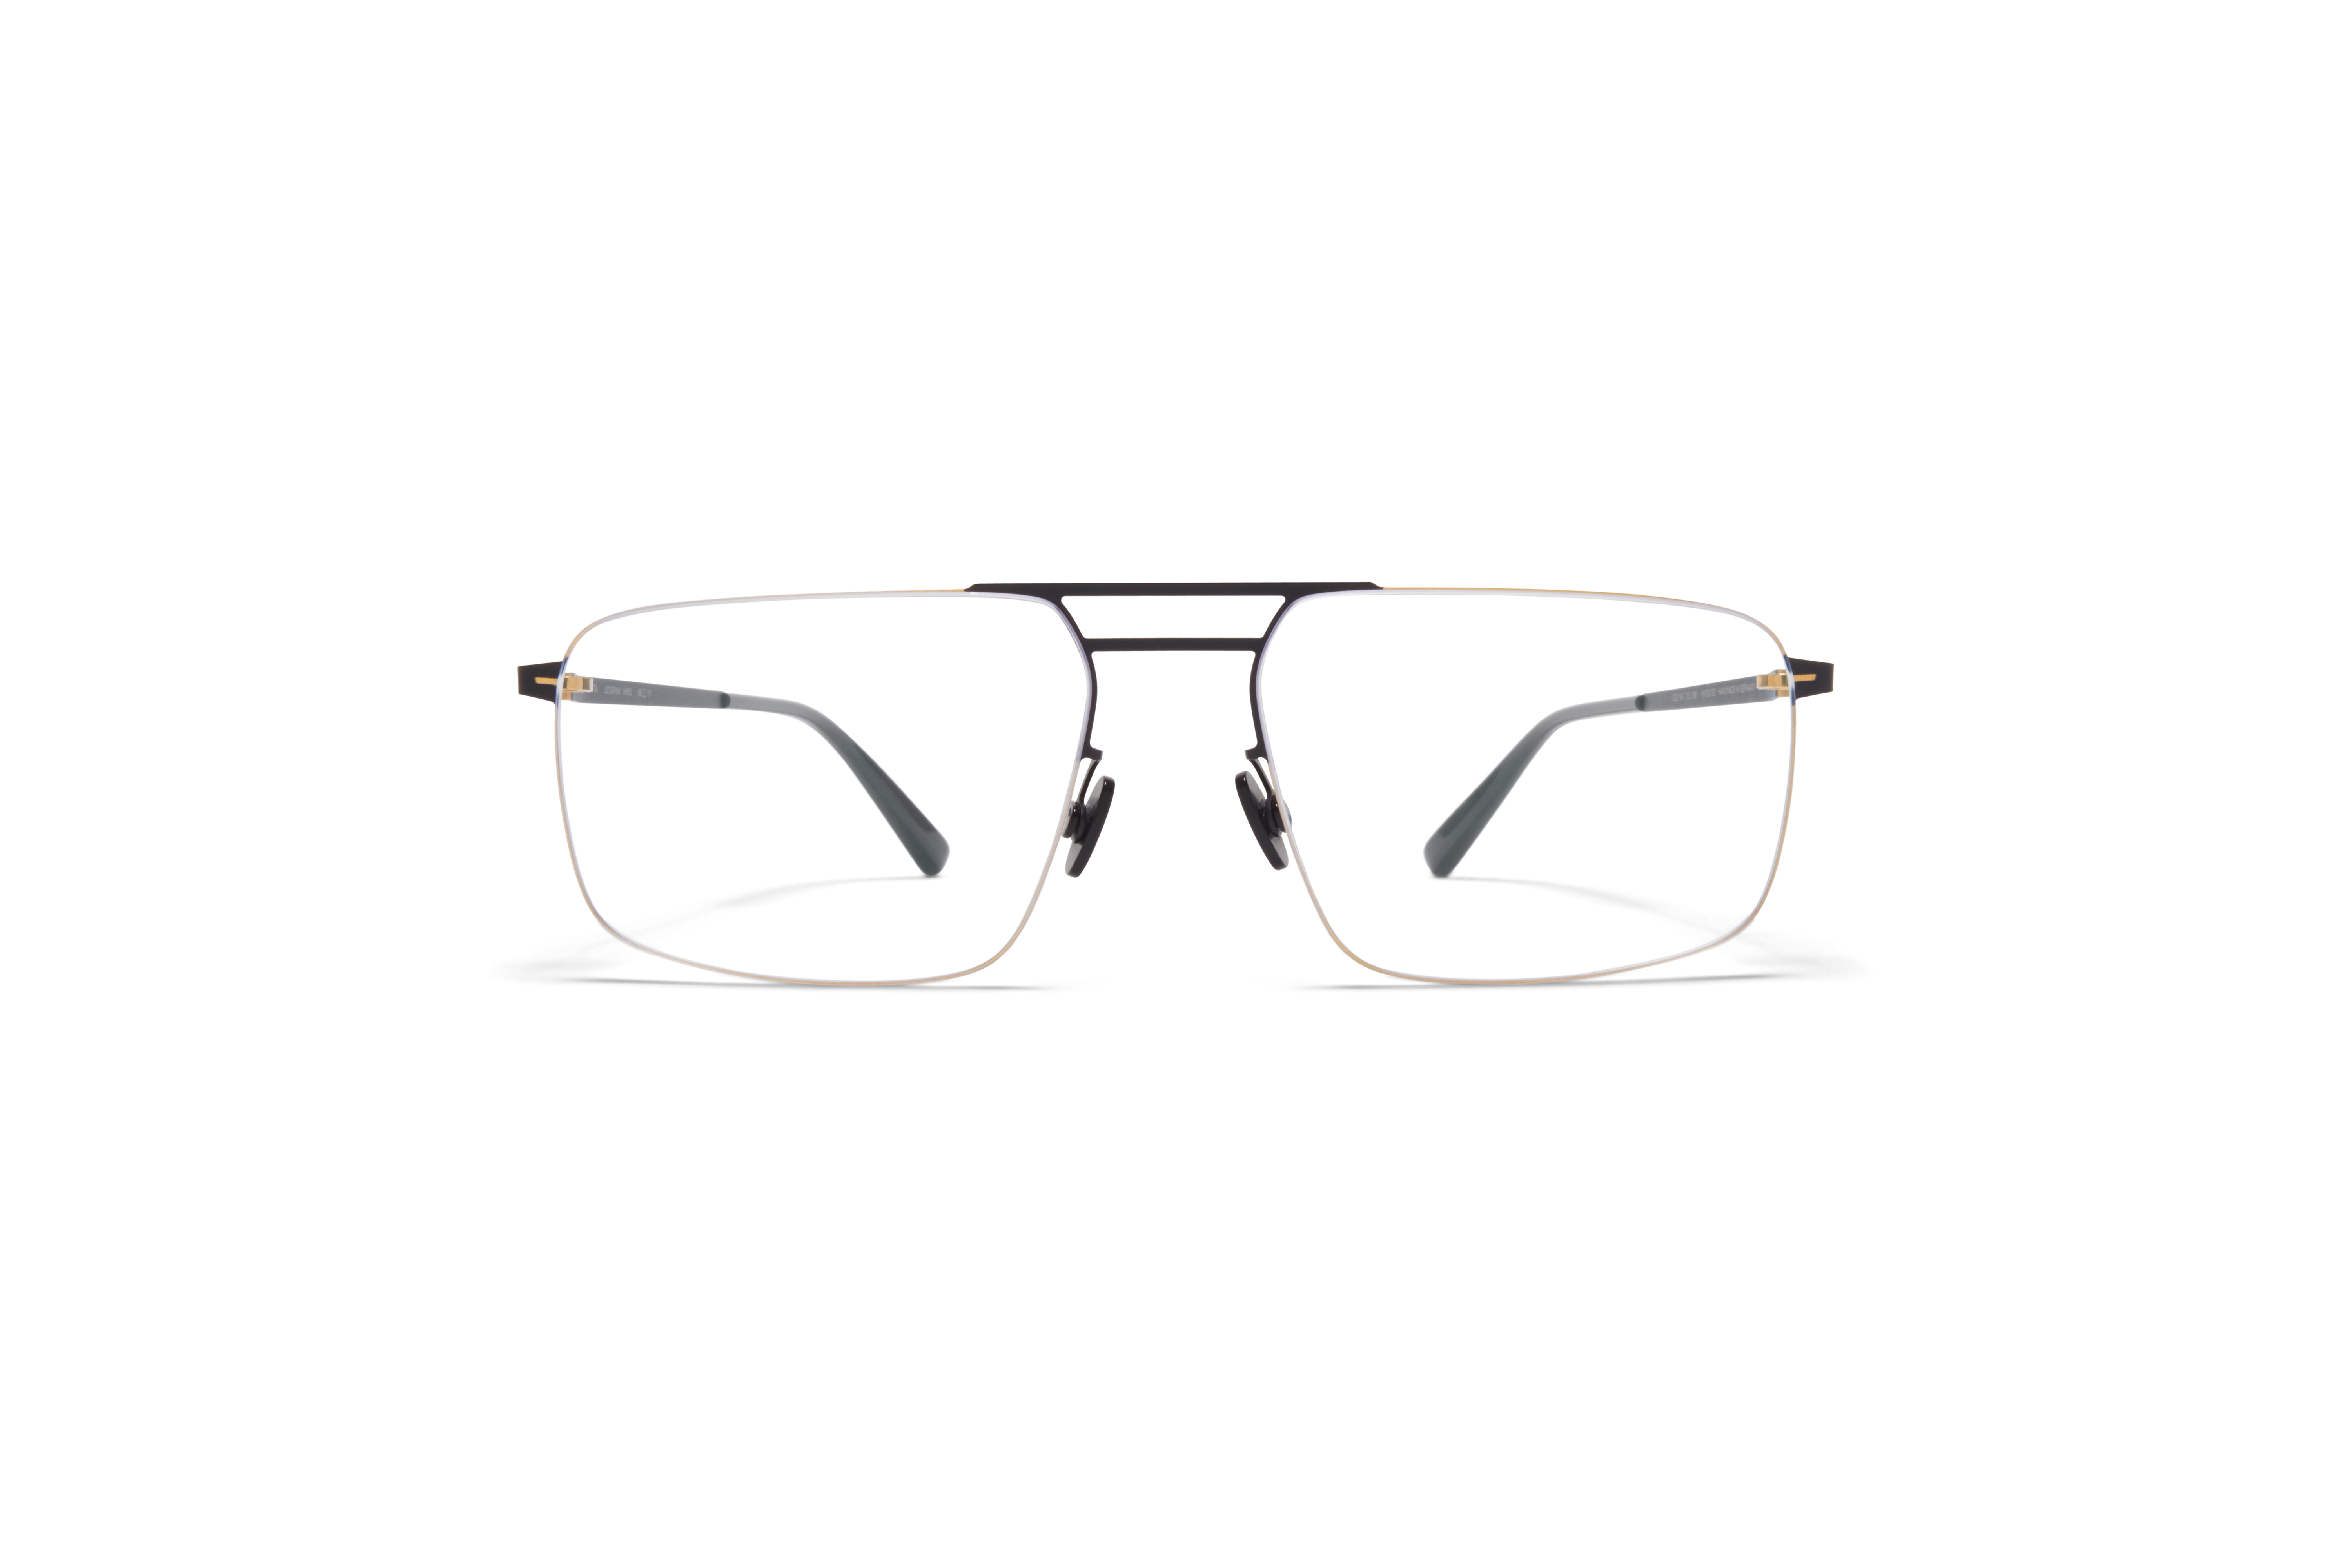 MYKITA Less Rim Rx Hiro Gold Black Clear